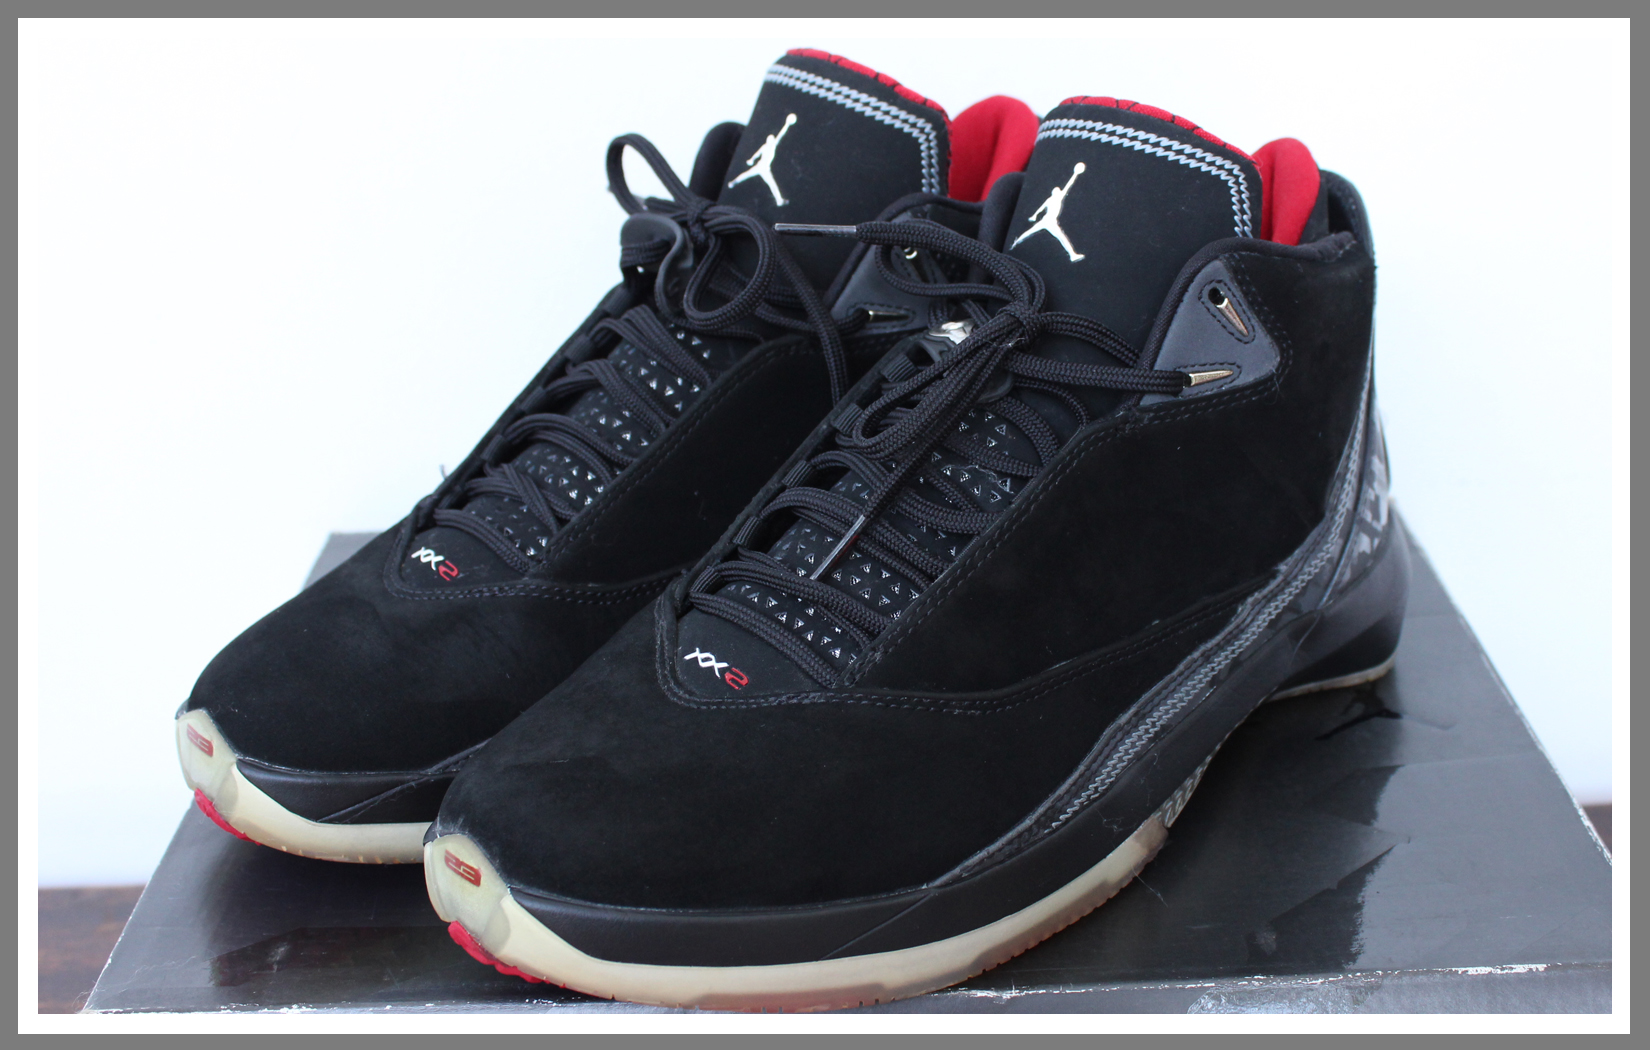 fe41ef2dcd5 Jordan XXII 22(black/varsity red/silver) 315299-001. Php 6,000 – DEADSTOCK  sz. 11 -minimal yellowing on the clear soles, all accessories included.